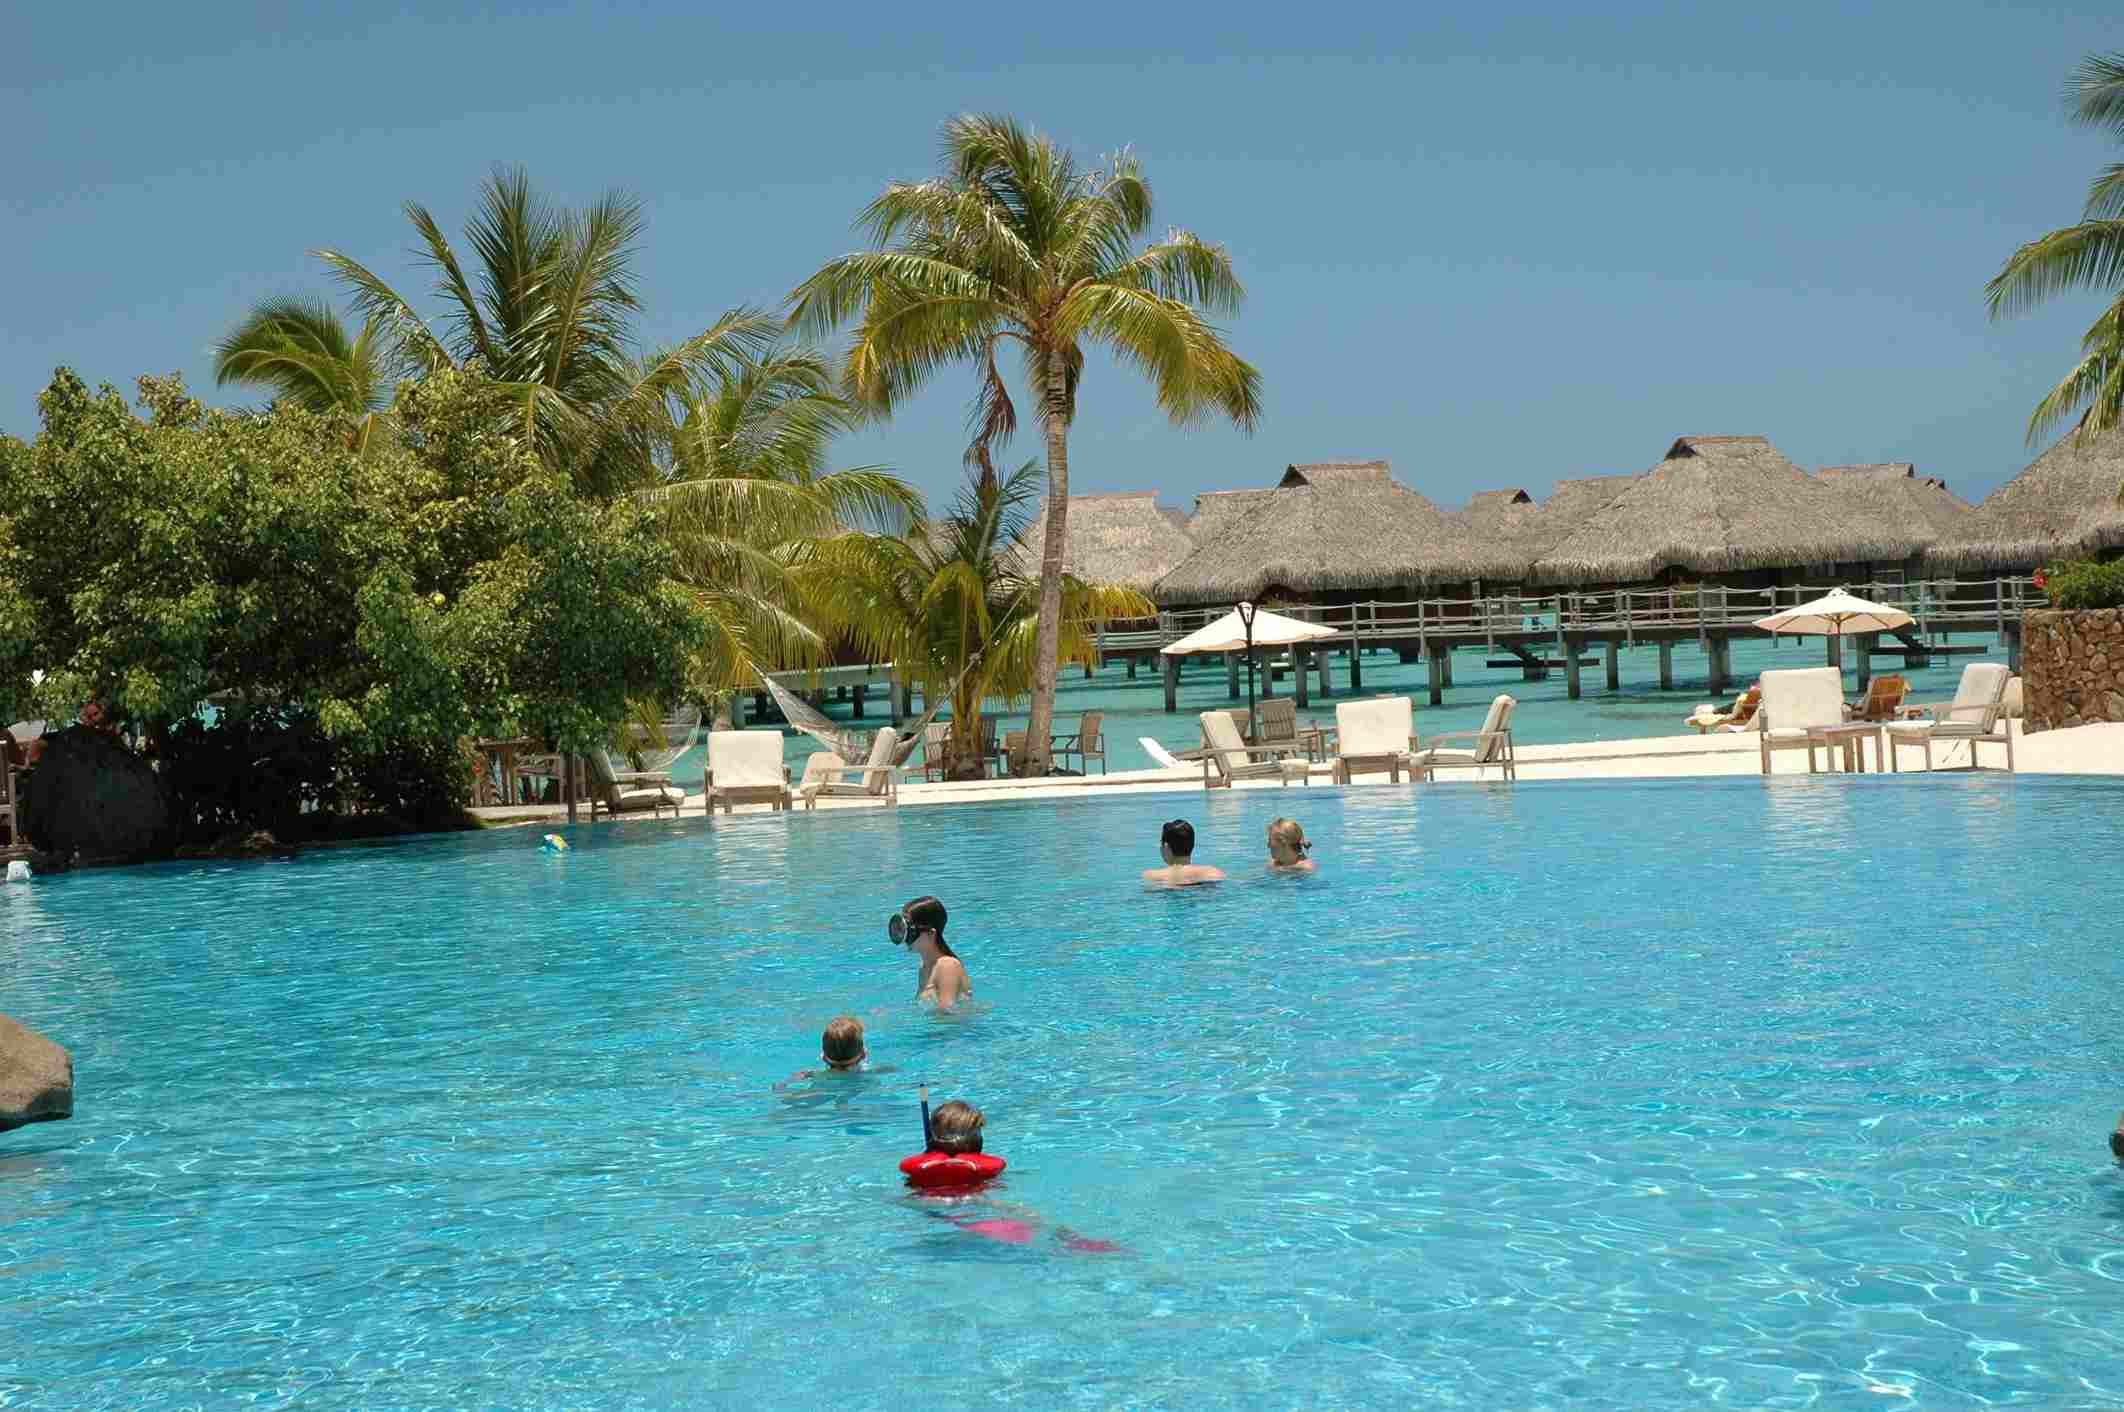 People swimming in a pool, Moorea, Tahiti, French Polynesia, South Pacific